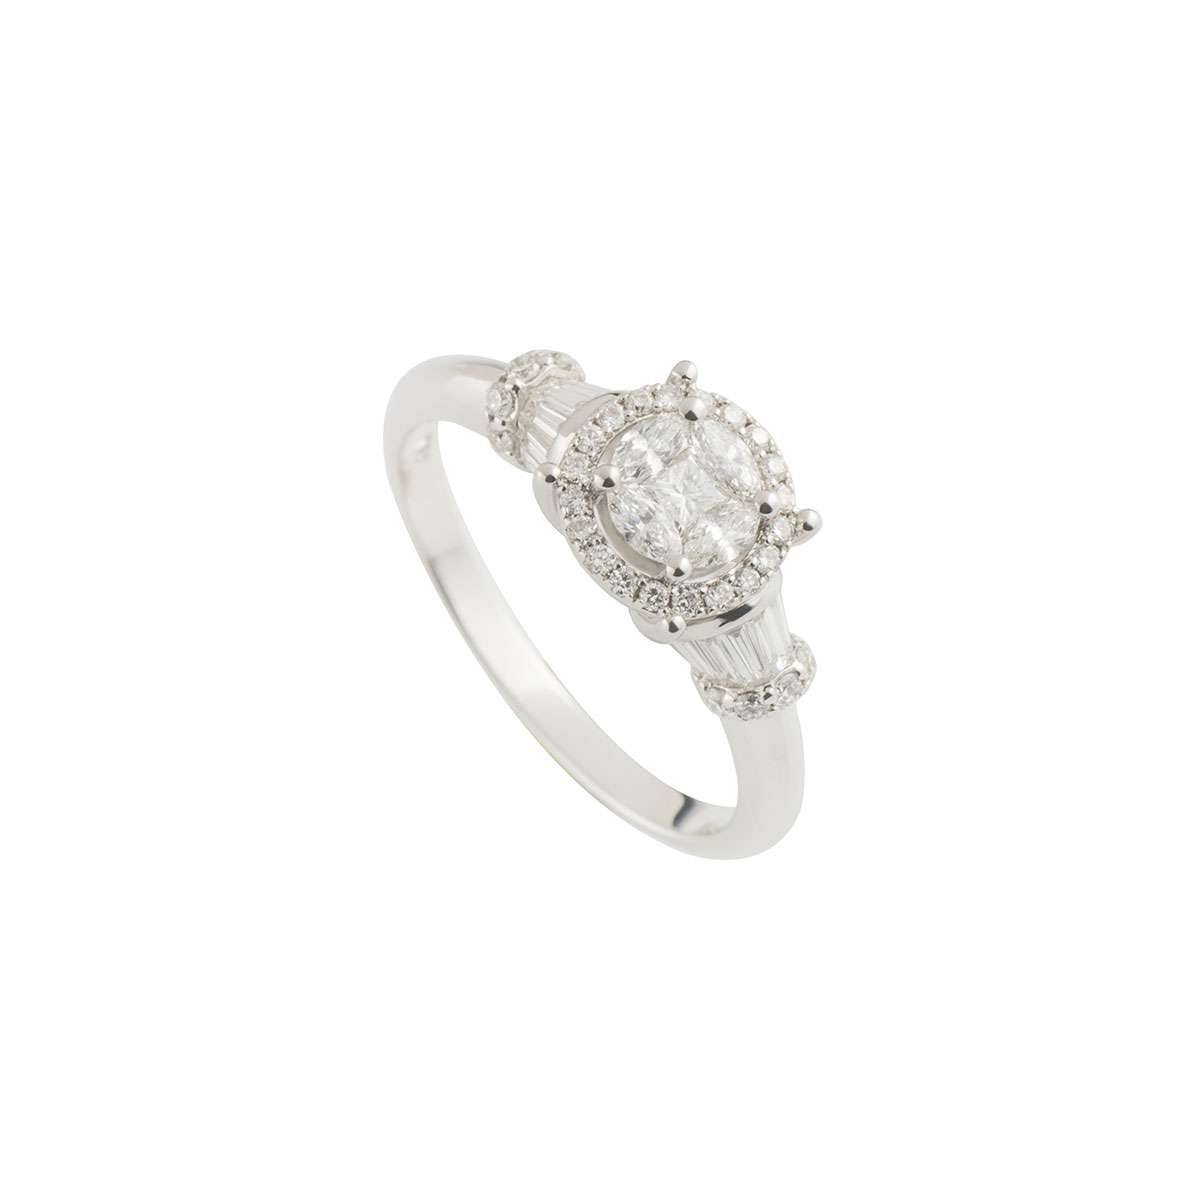 White Gold Cluster Diamond Ring 0.71ct G-H/VS-VVS